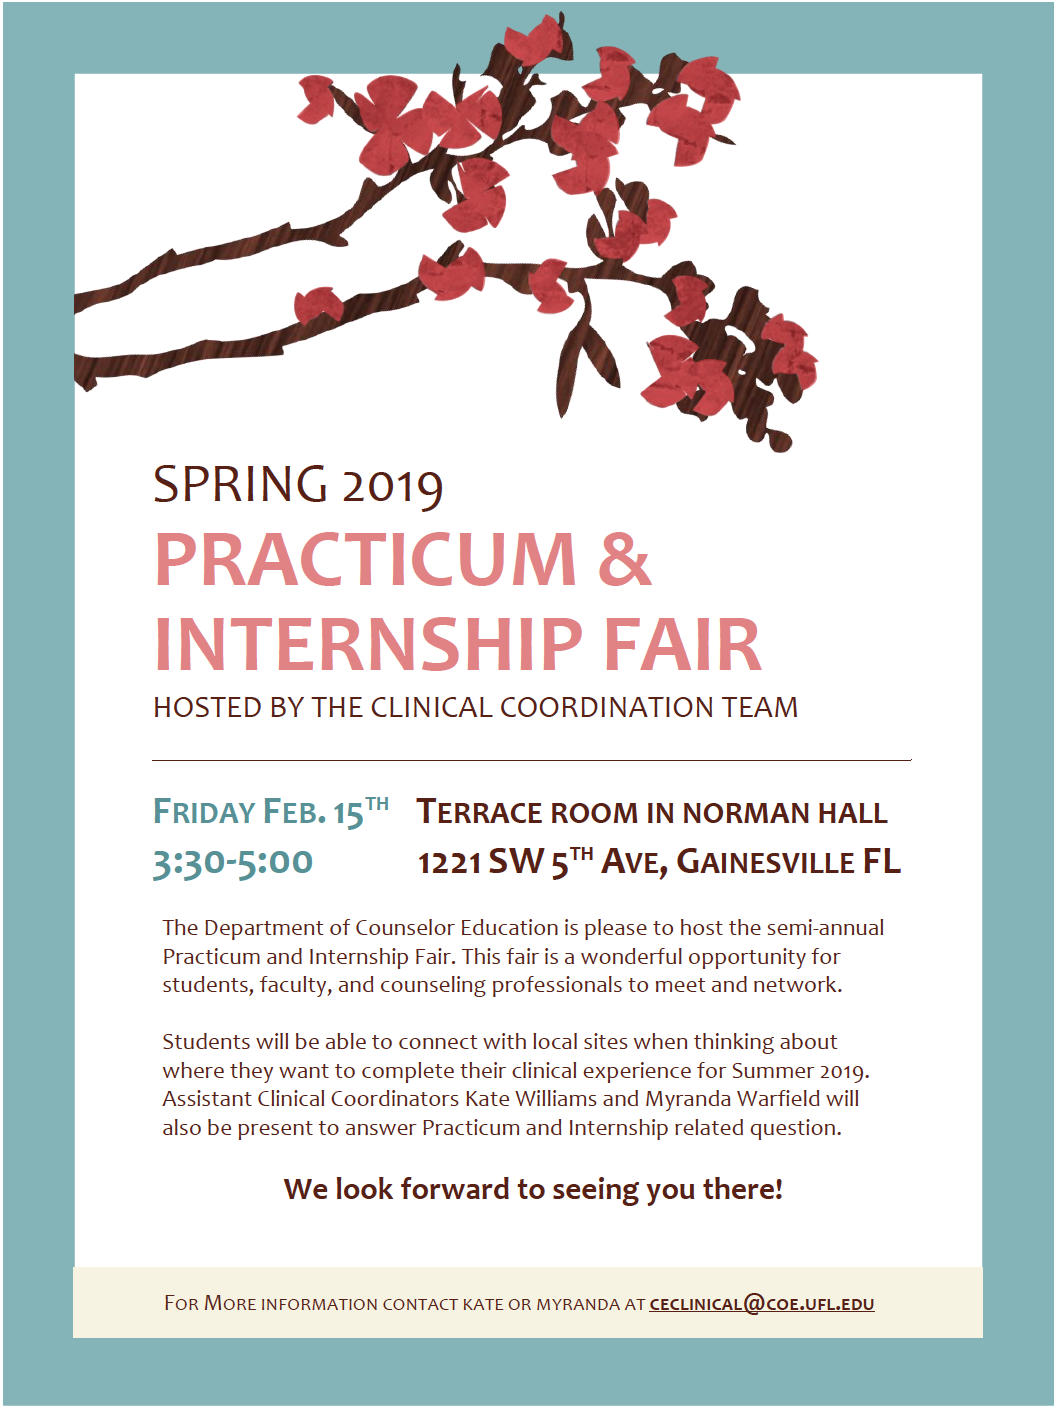 Practicum and Internship Fair Flyer